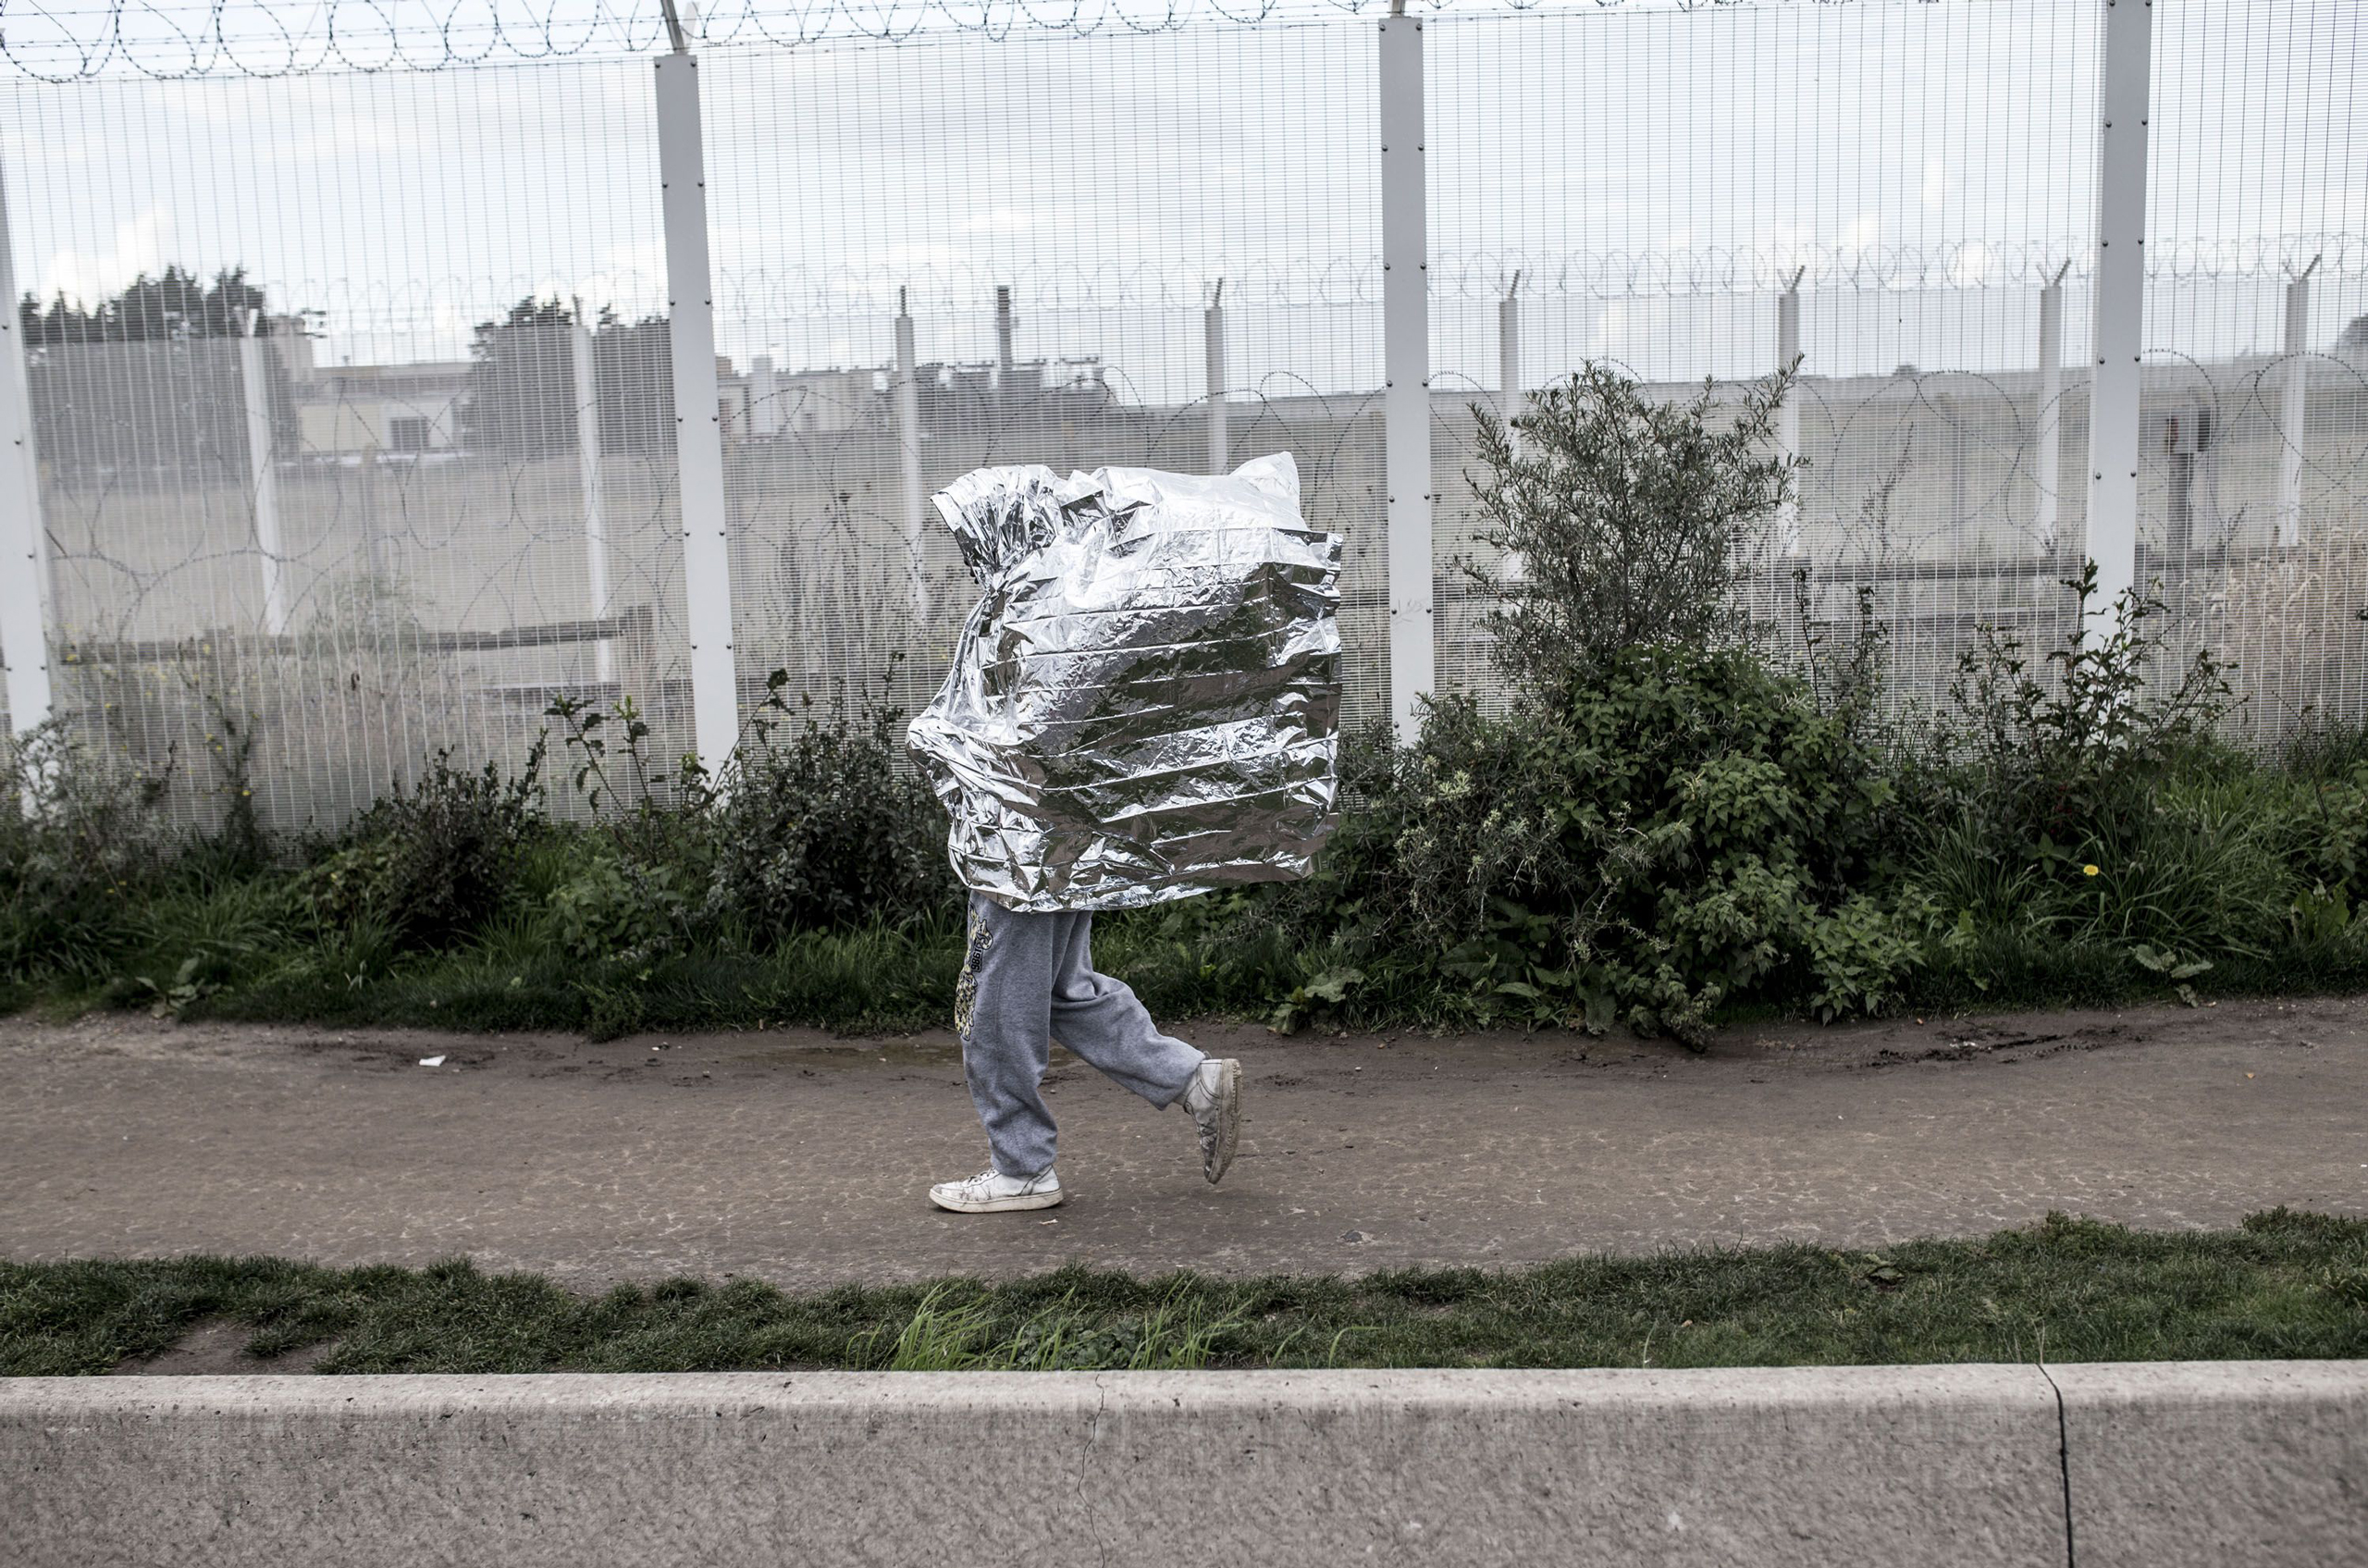 A resident of the refugee camp called 'The Jungle' walking with a survival blanket in Calais, France, on Oct. 17, 2016.